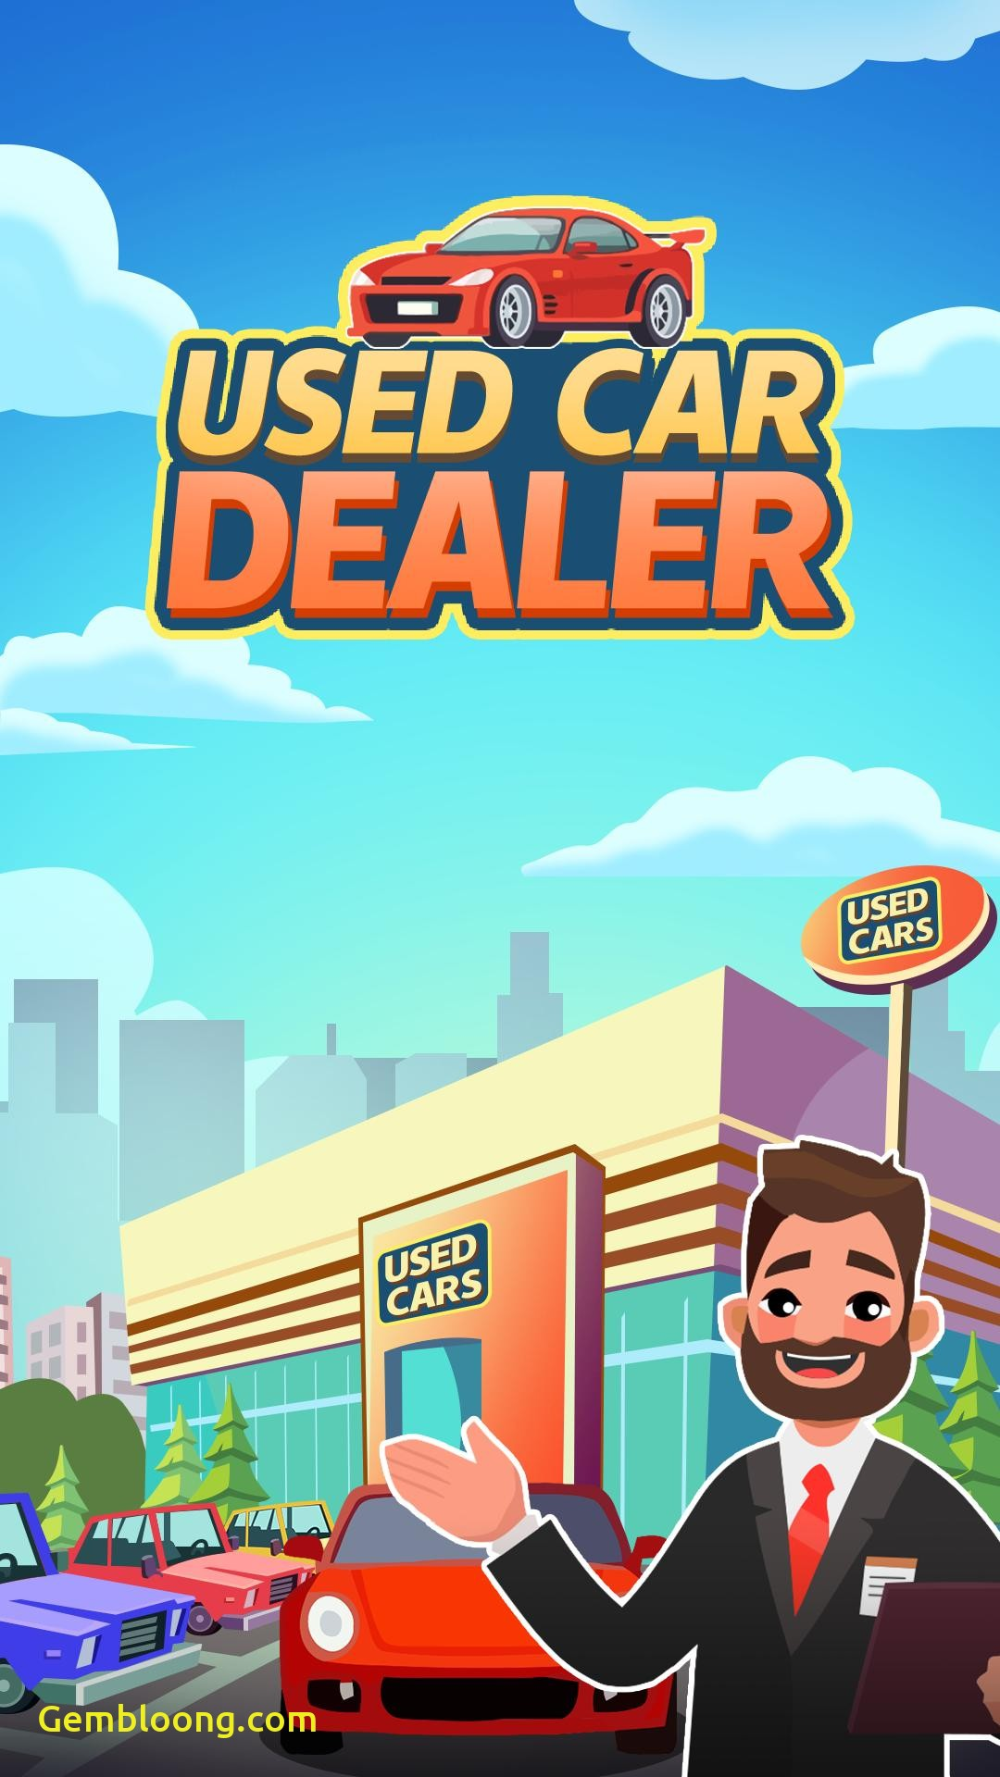 Used Car Dealerships Elegant Idle Used Car Dealer for